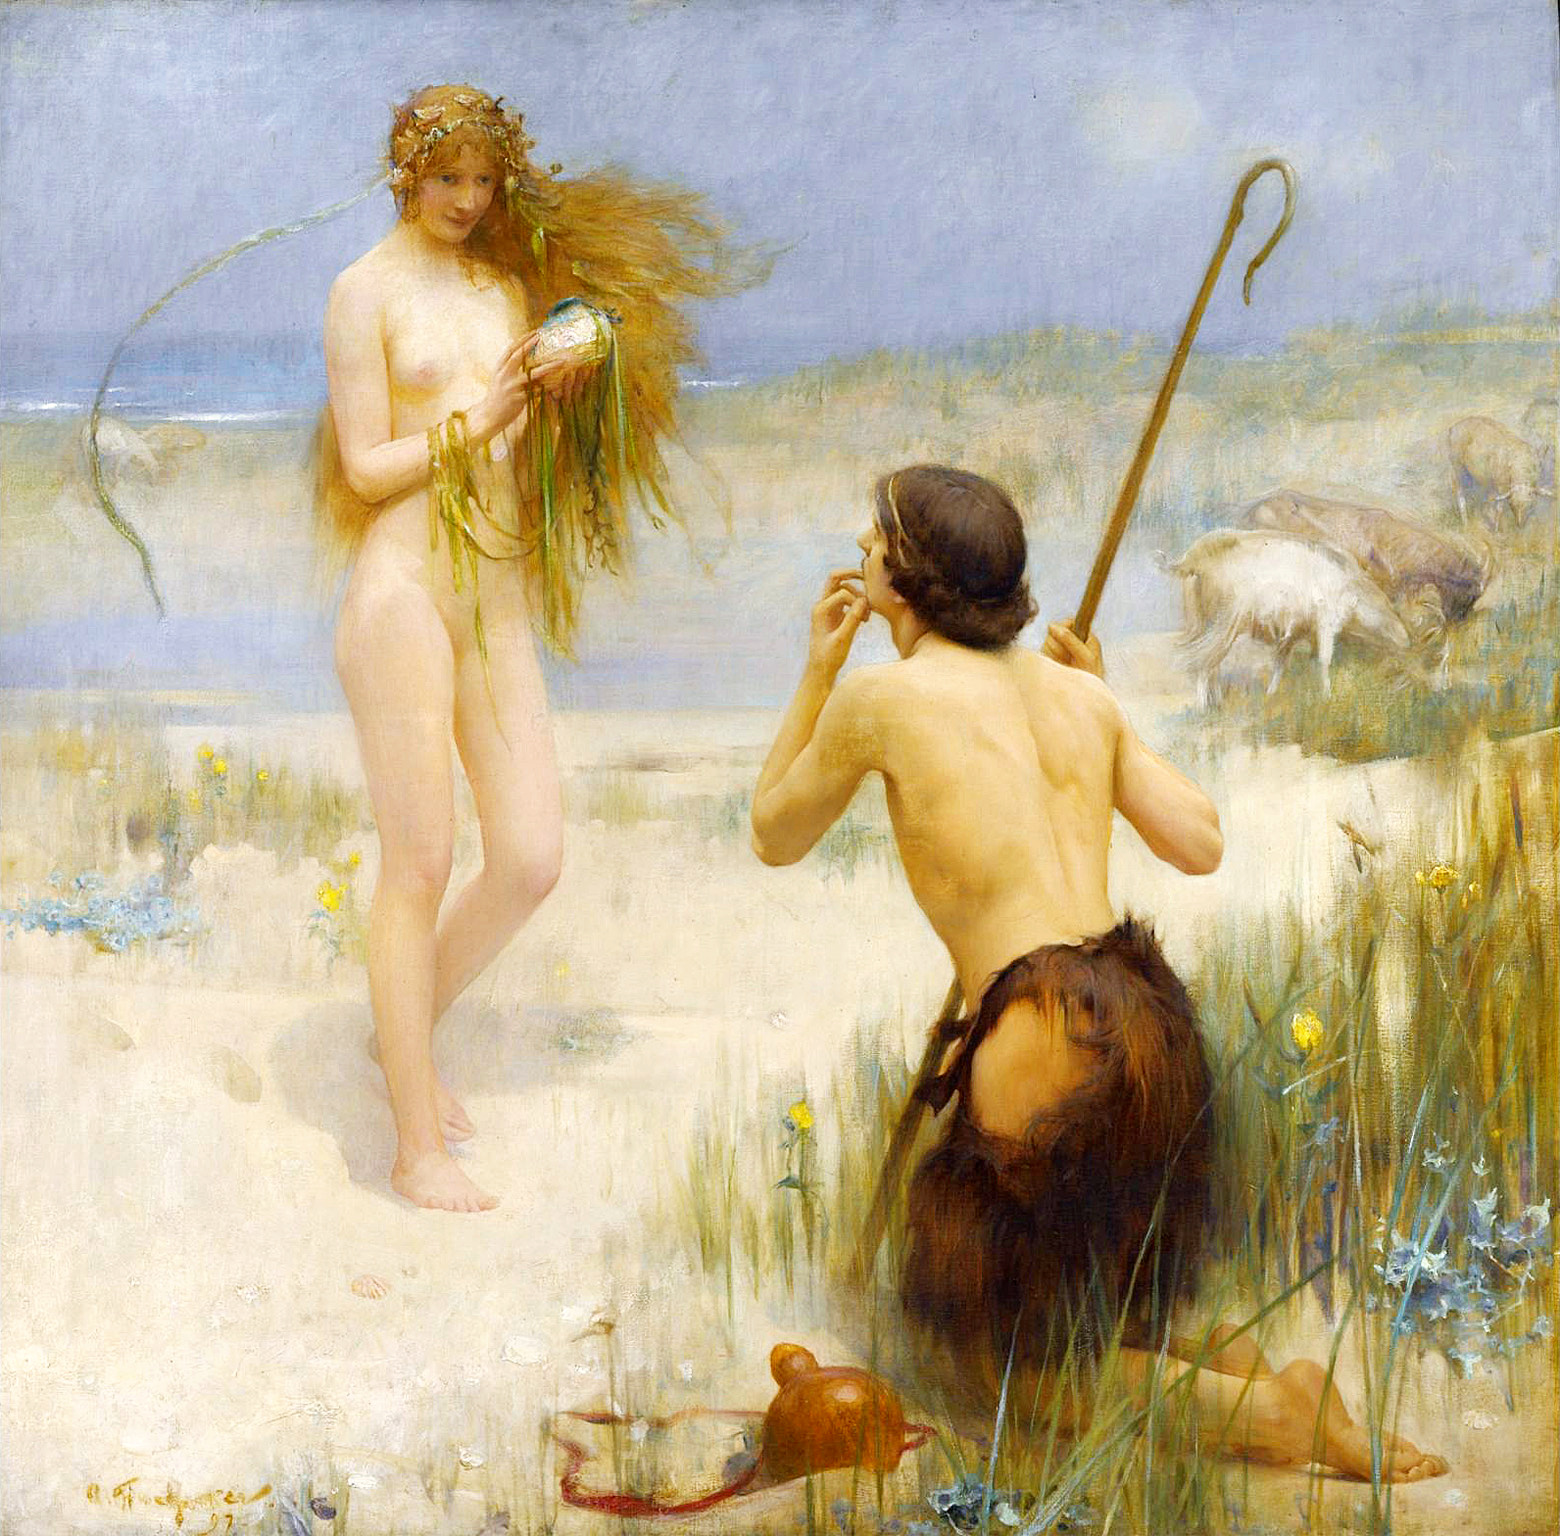 Arthur Hacker. The Sea-Maid 1897